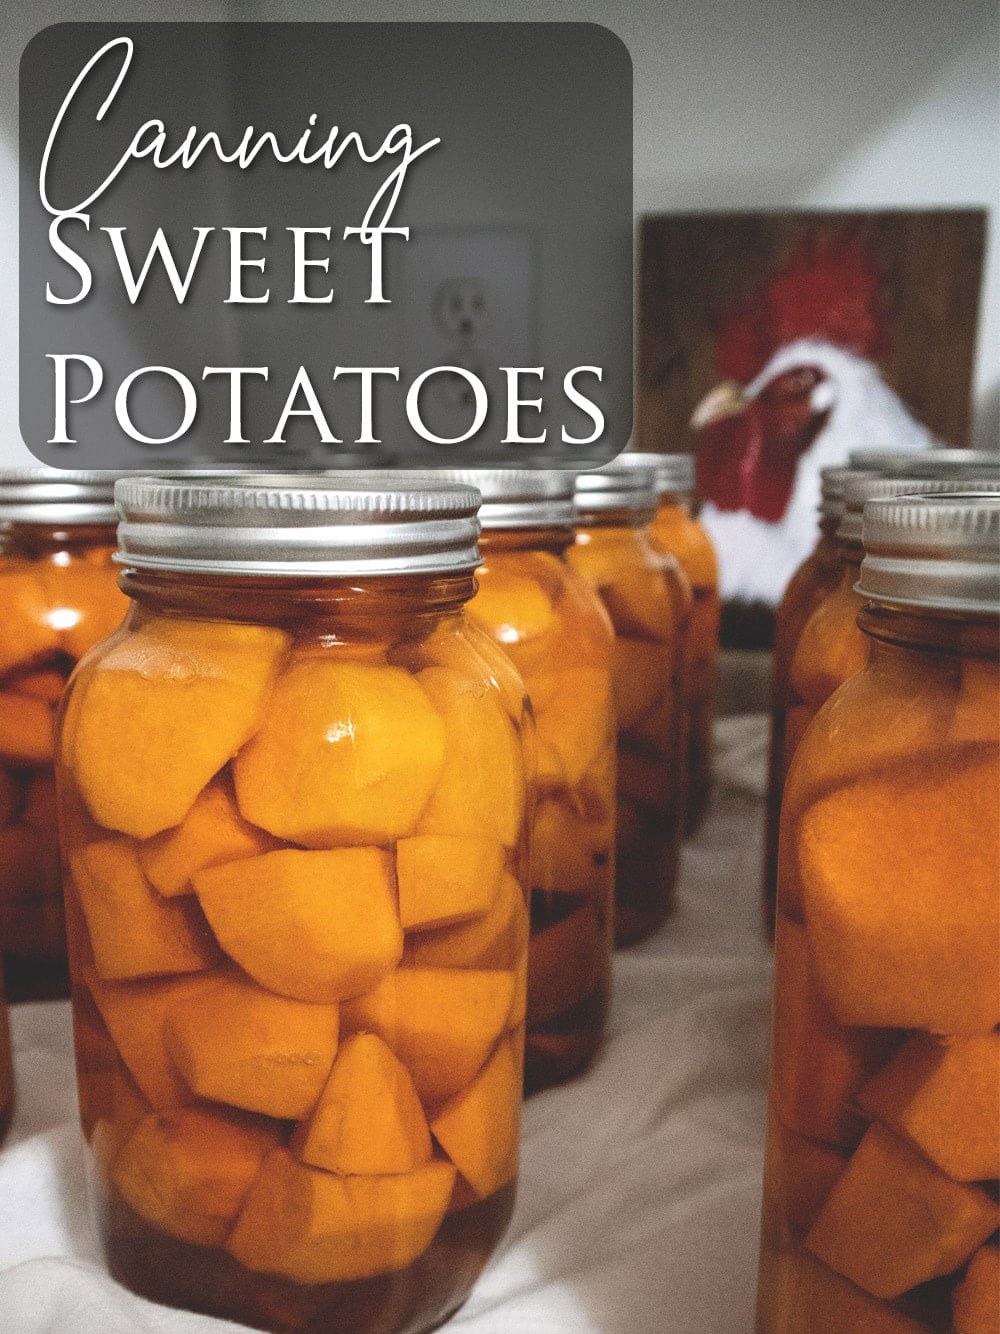 Today I brought you into the kitchen to  join me as I canned some sweet potatoes.